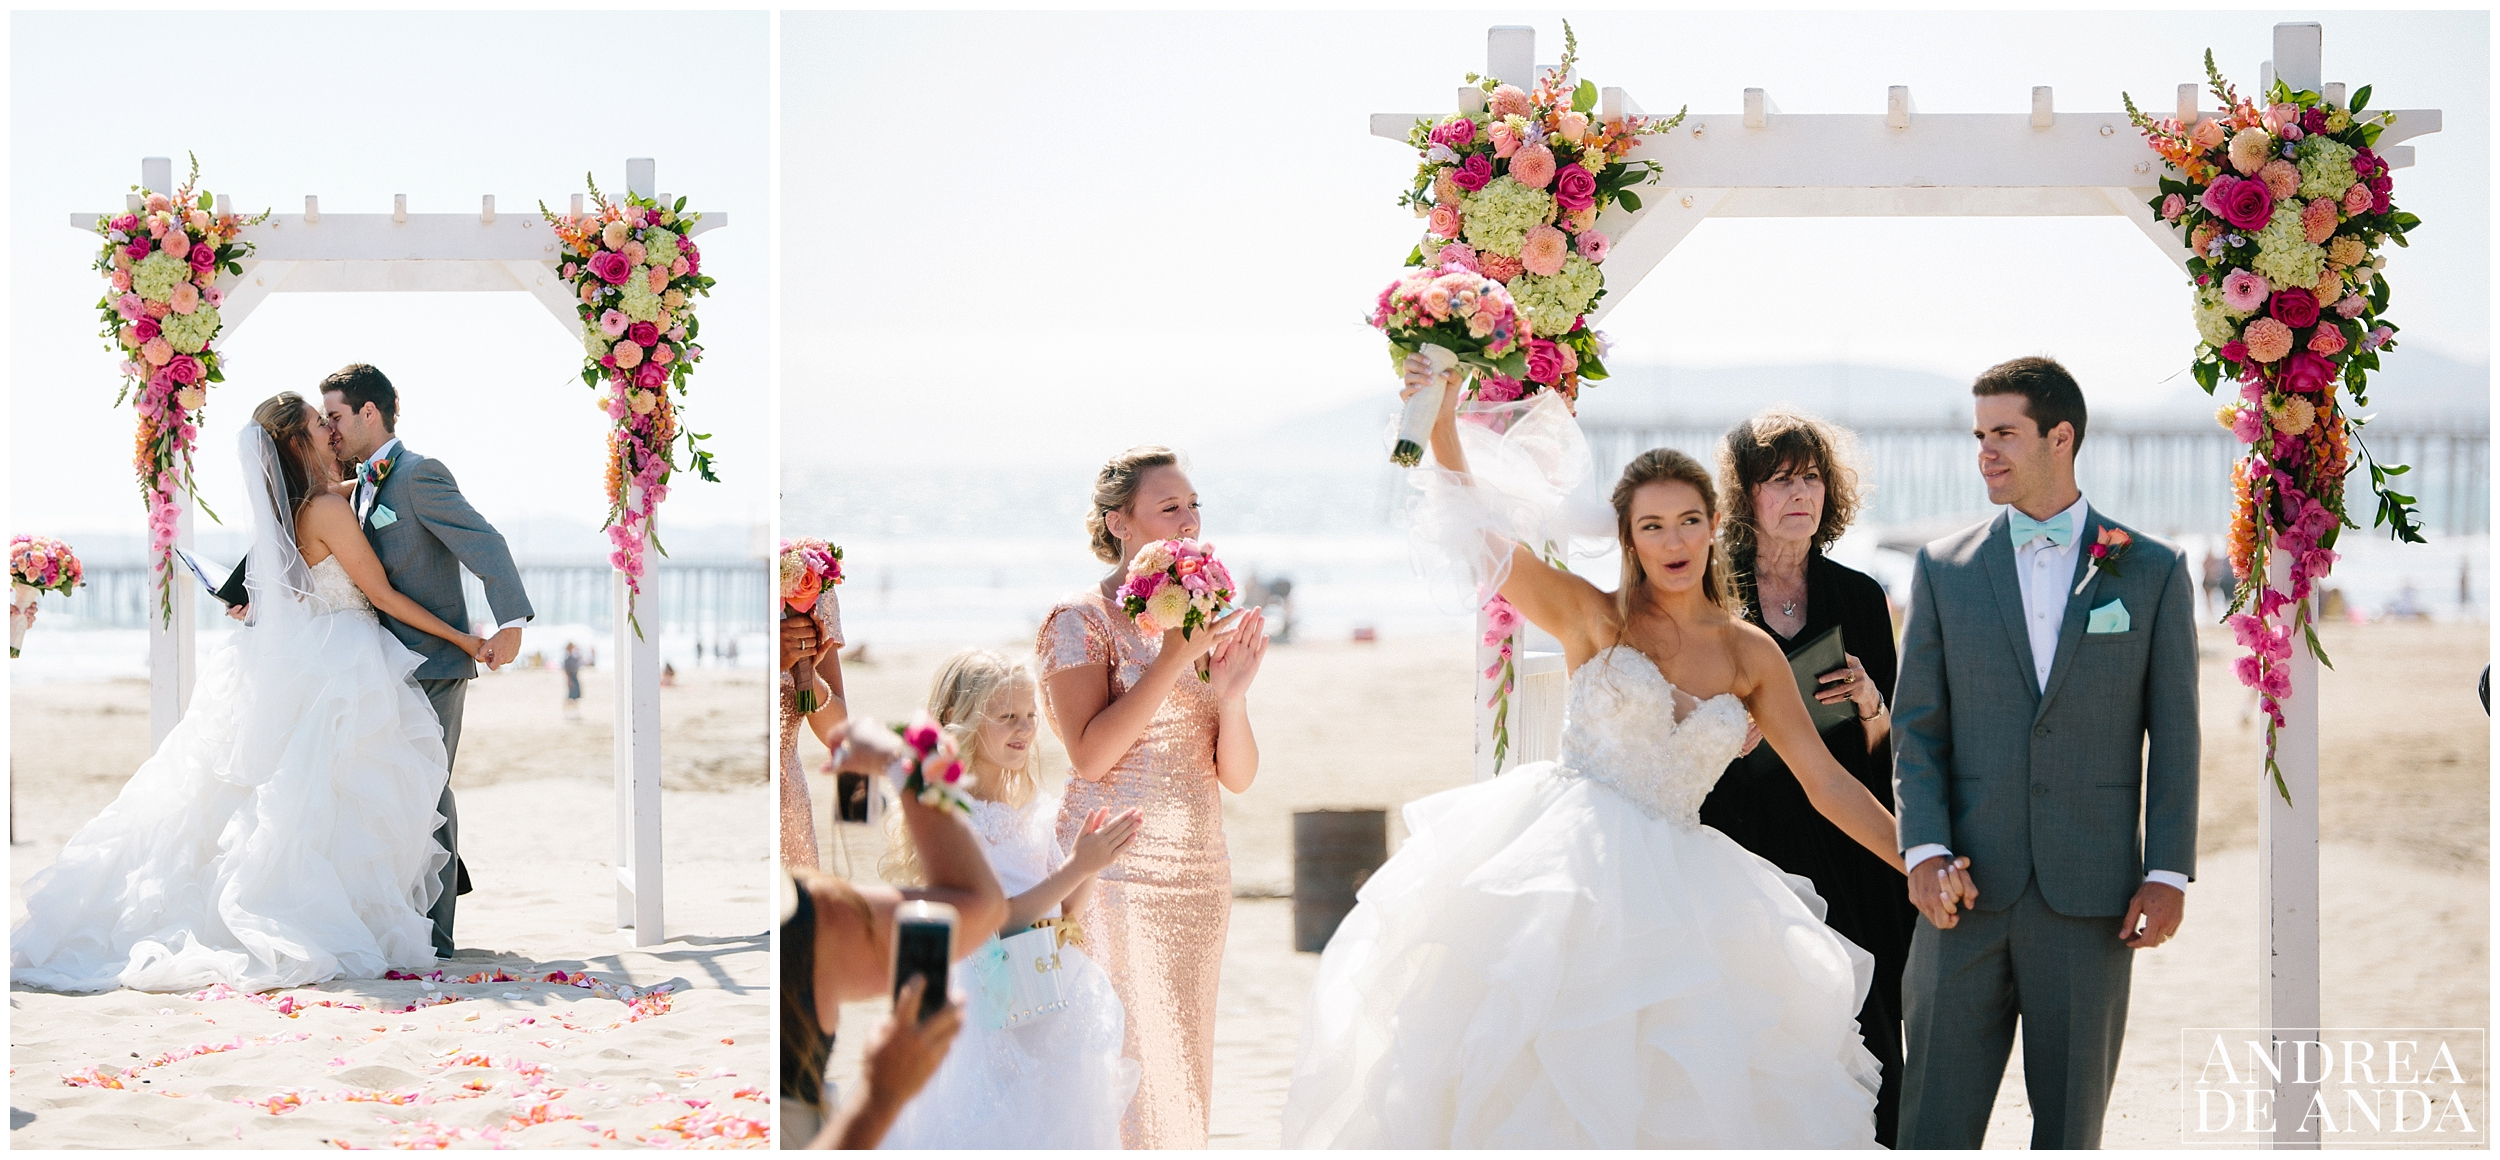 First Kiss and presenting married couple at the beach wedding